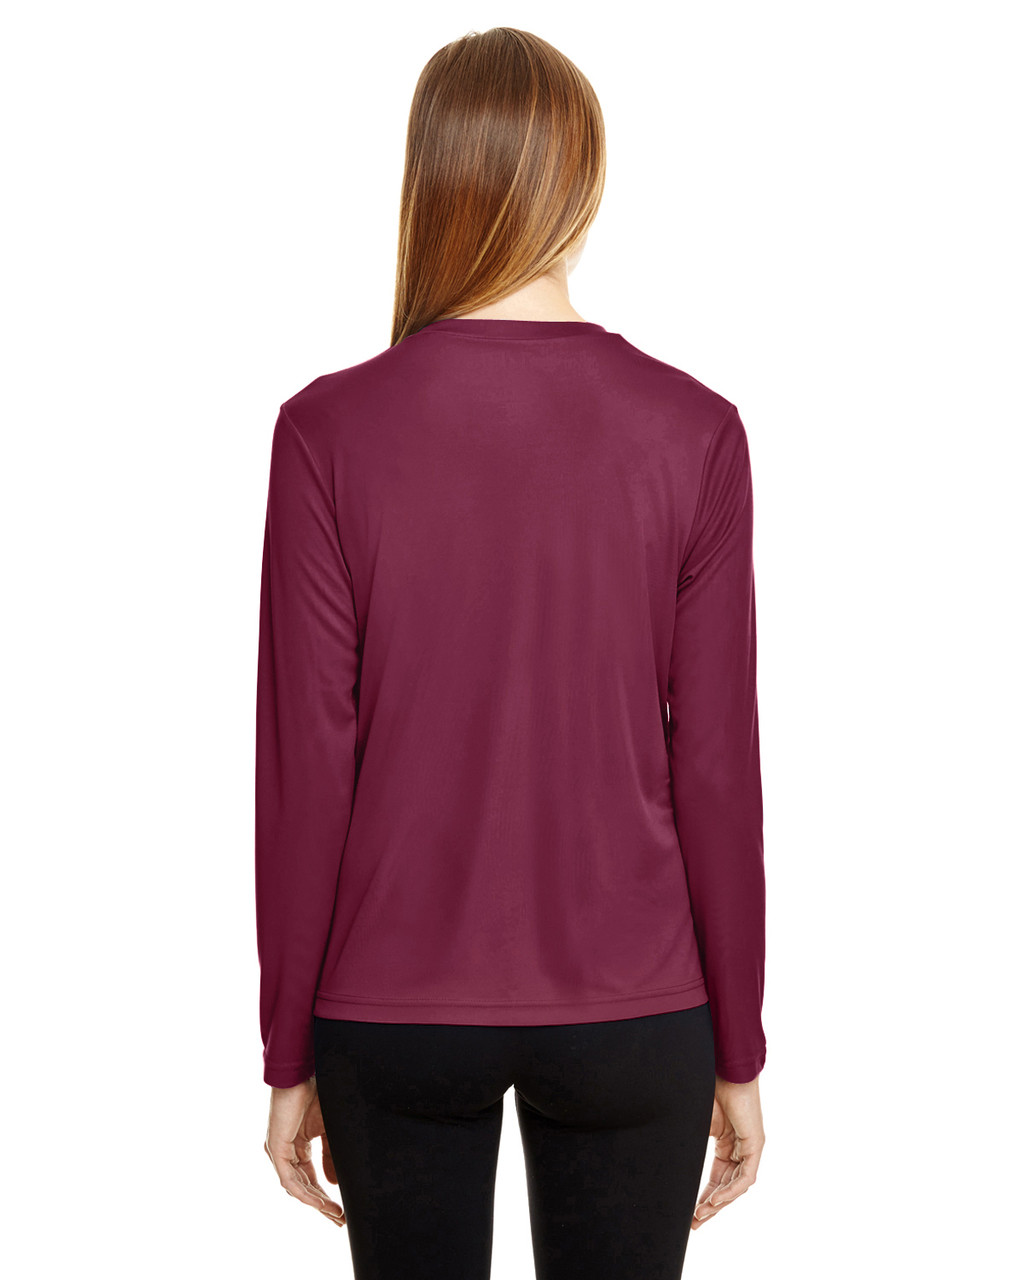 Sport Maroon - TT11WL Team 365 Ladies' Zone Performance Long-Sleeve T-Shirt